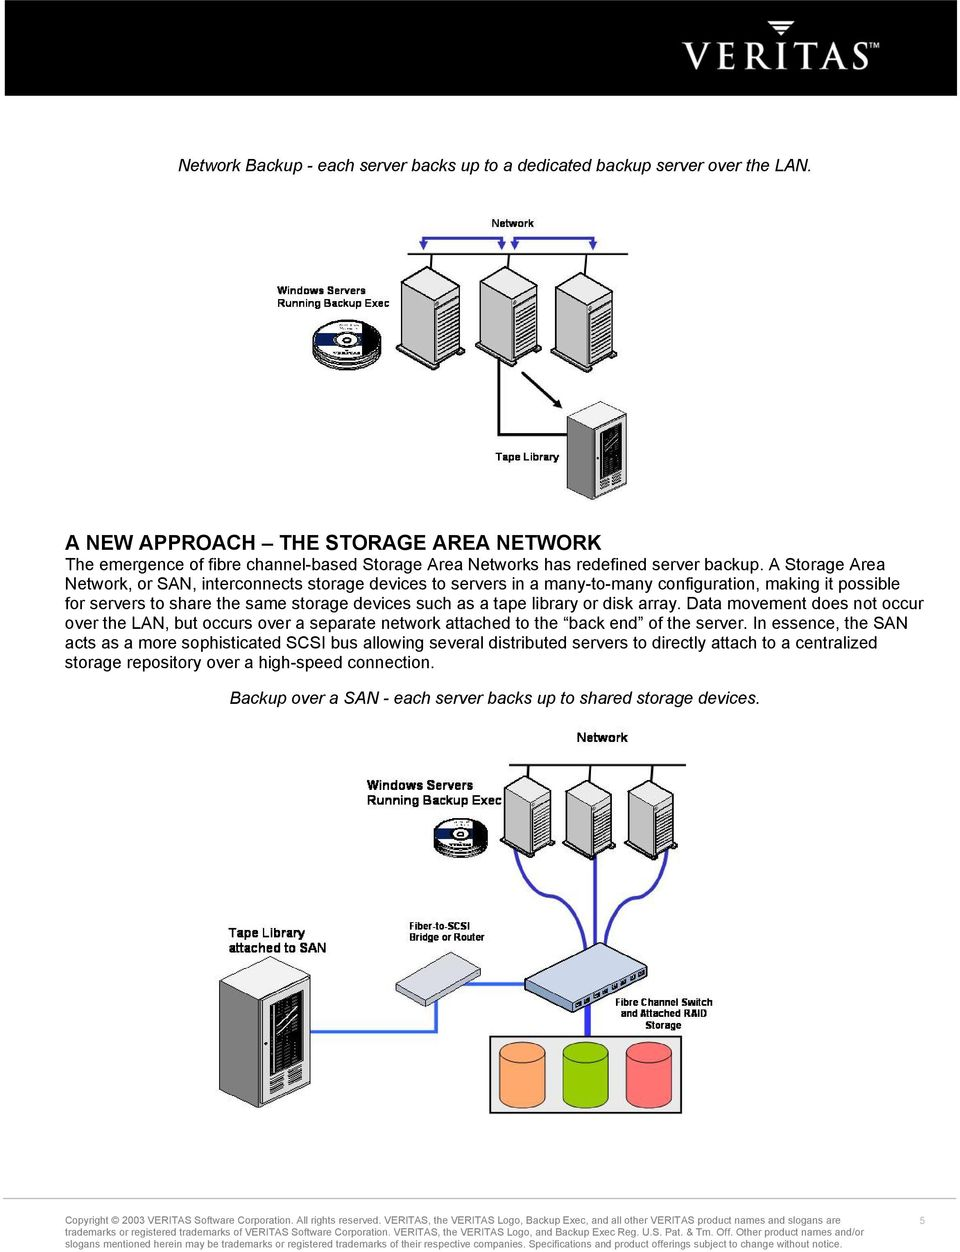 A Storage Area Network, or SAN, interconnects storage devices to servers in a many-to-many configuration, making it possible for servers to share the same storage devices such as a tape library or